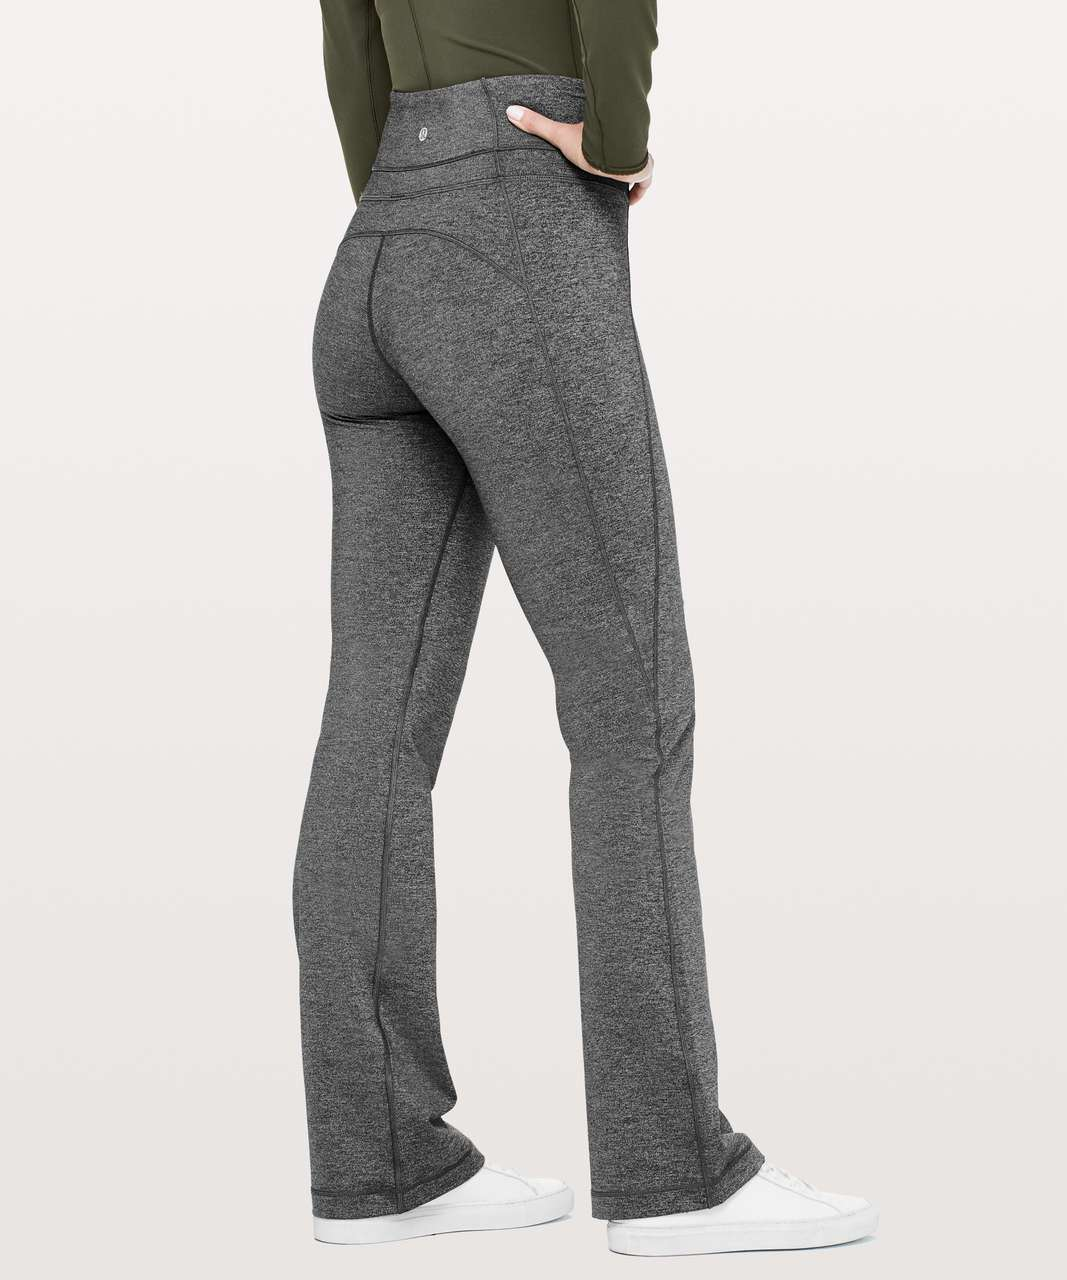 "Lululemon Groove Pant Bootcut 32"" - Heathered Black (Second Release)"